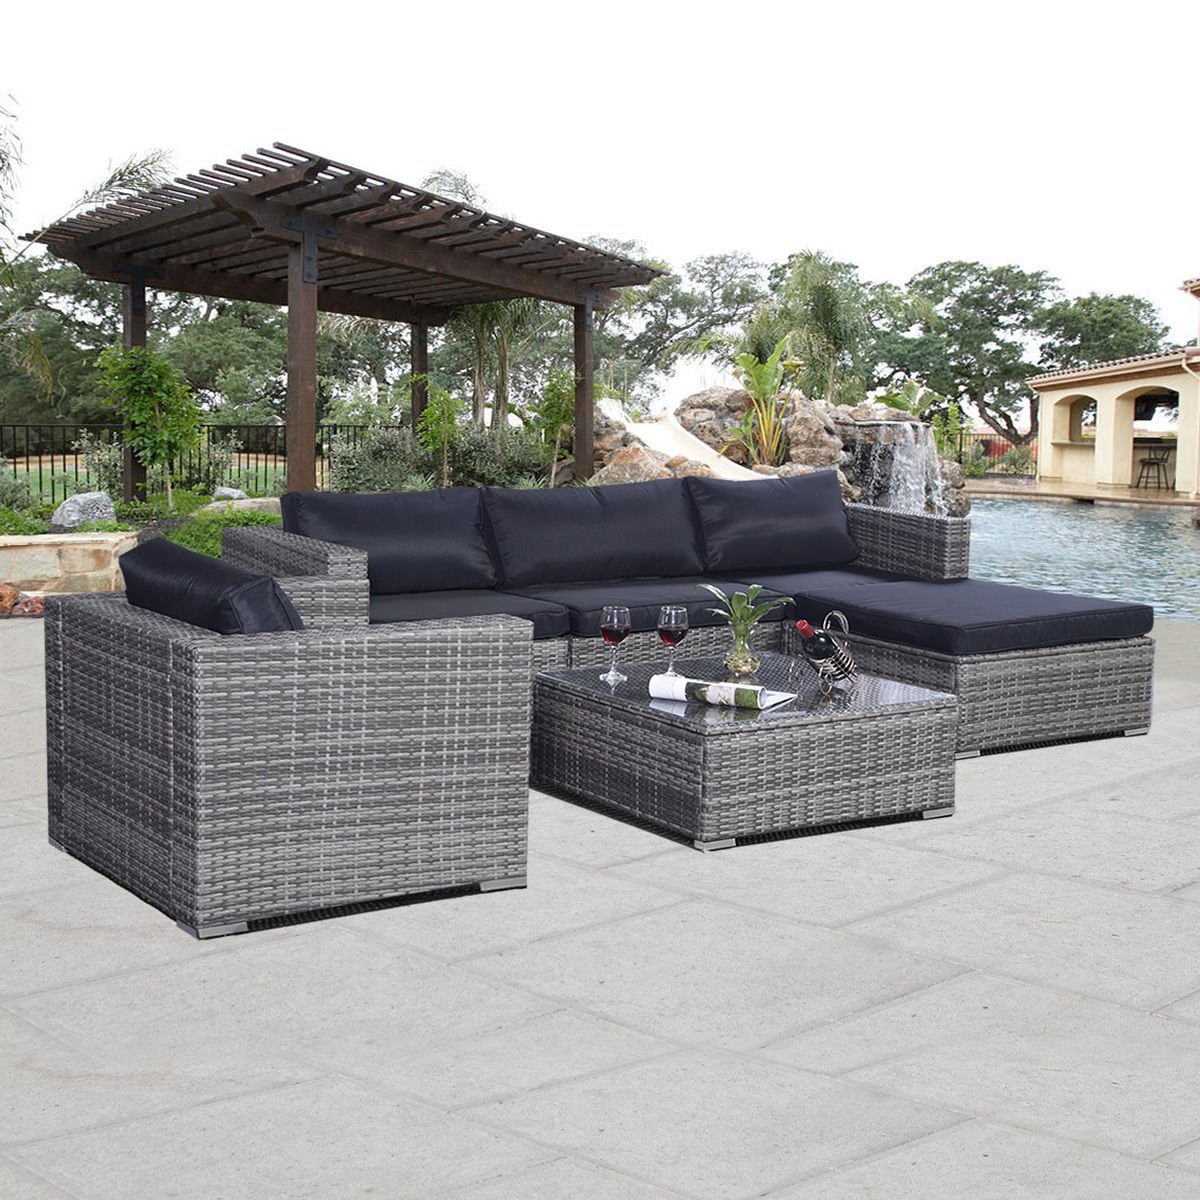 Remove term: outdoor living spaces designs outdoor living spaces designs